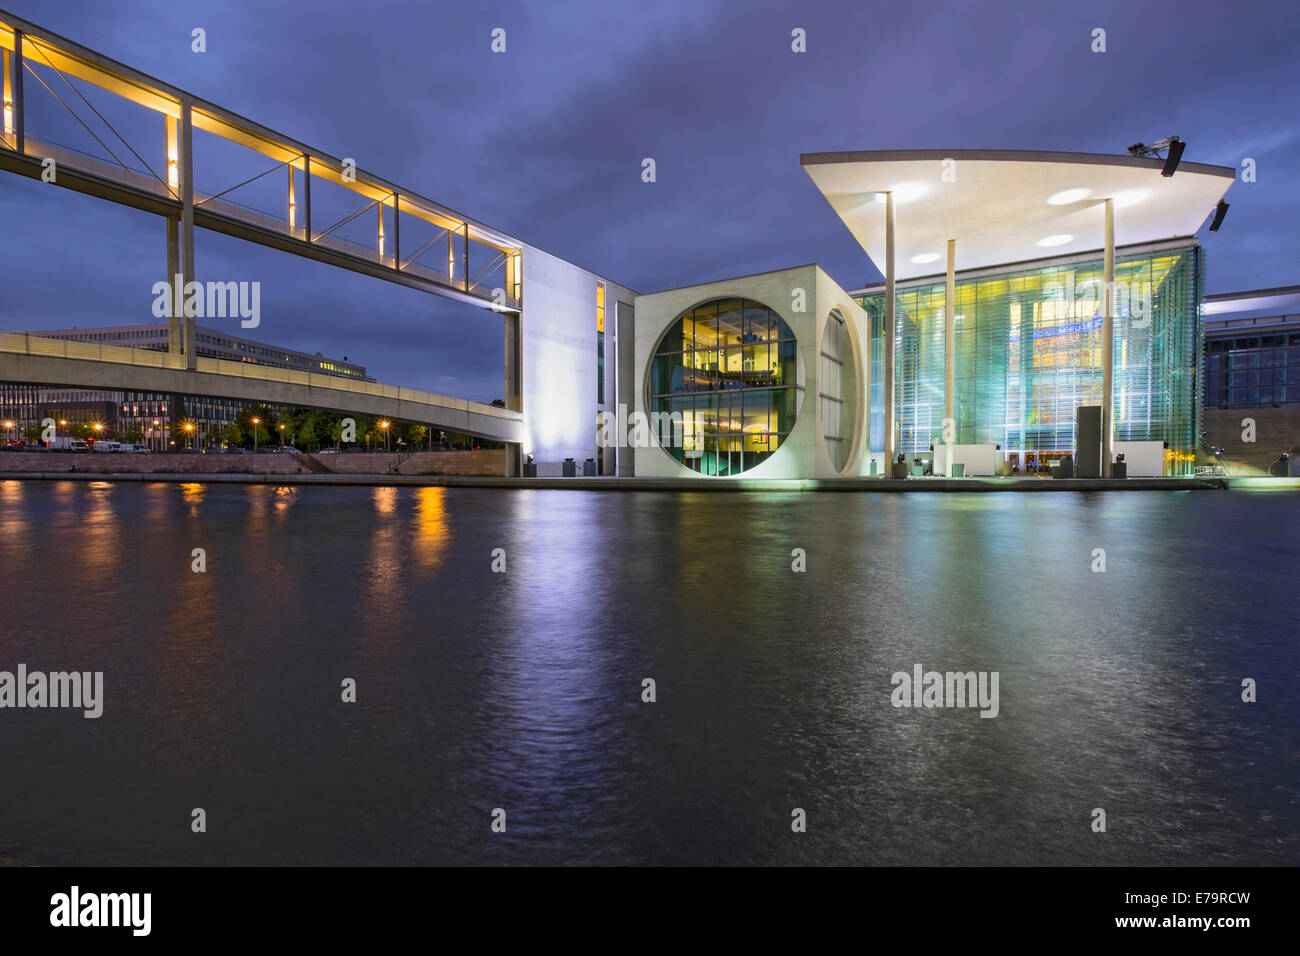 Government buildings Marie-Elisabeth Luders haus part of Bundestag at Regierungsviertel (Government District  beside Stock Photo